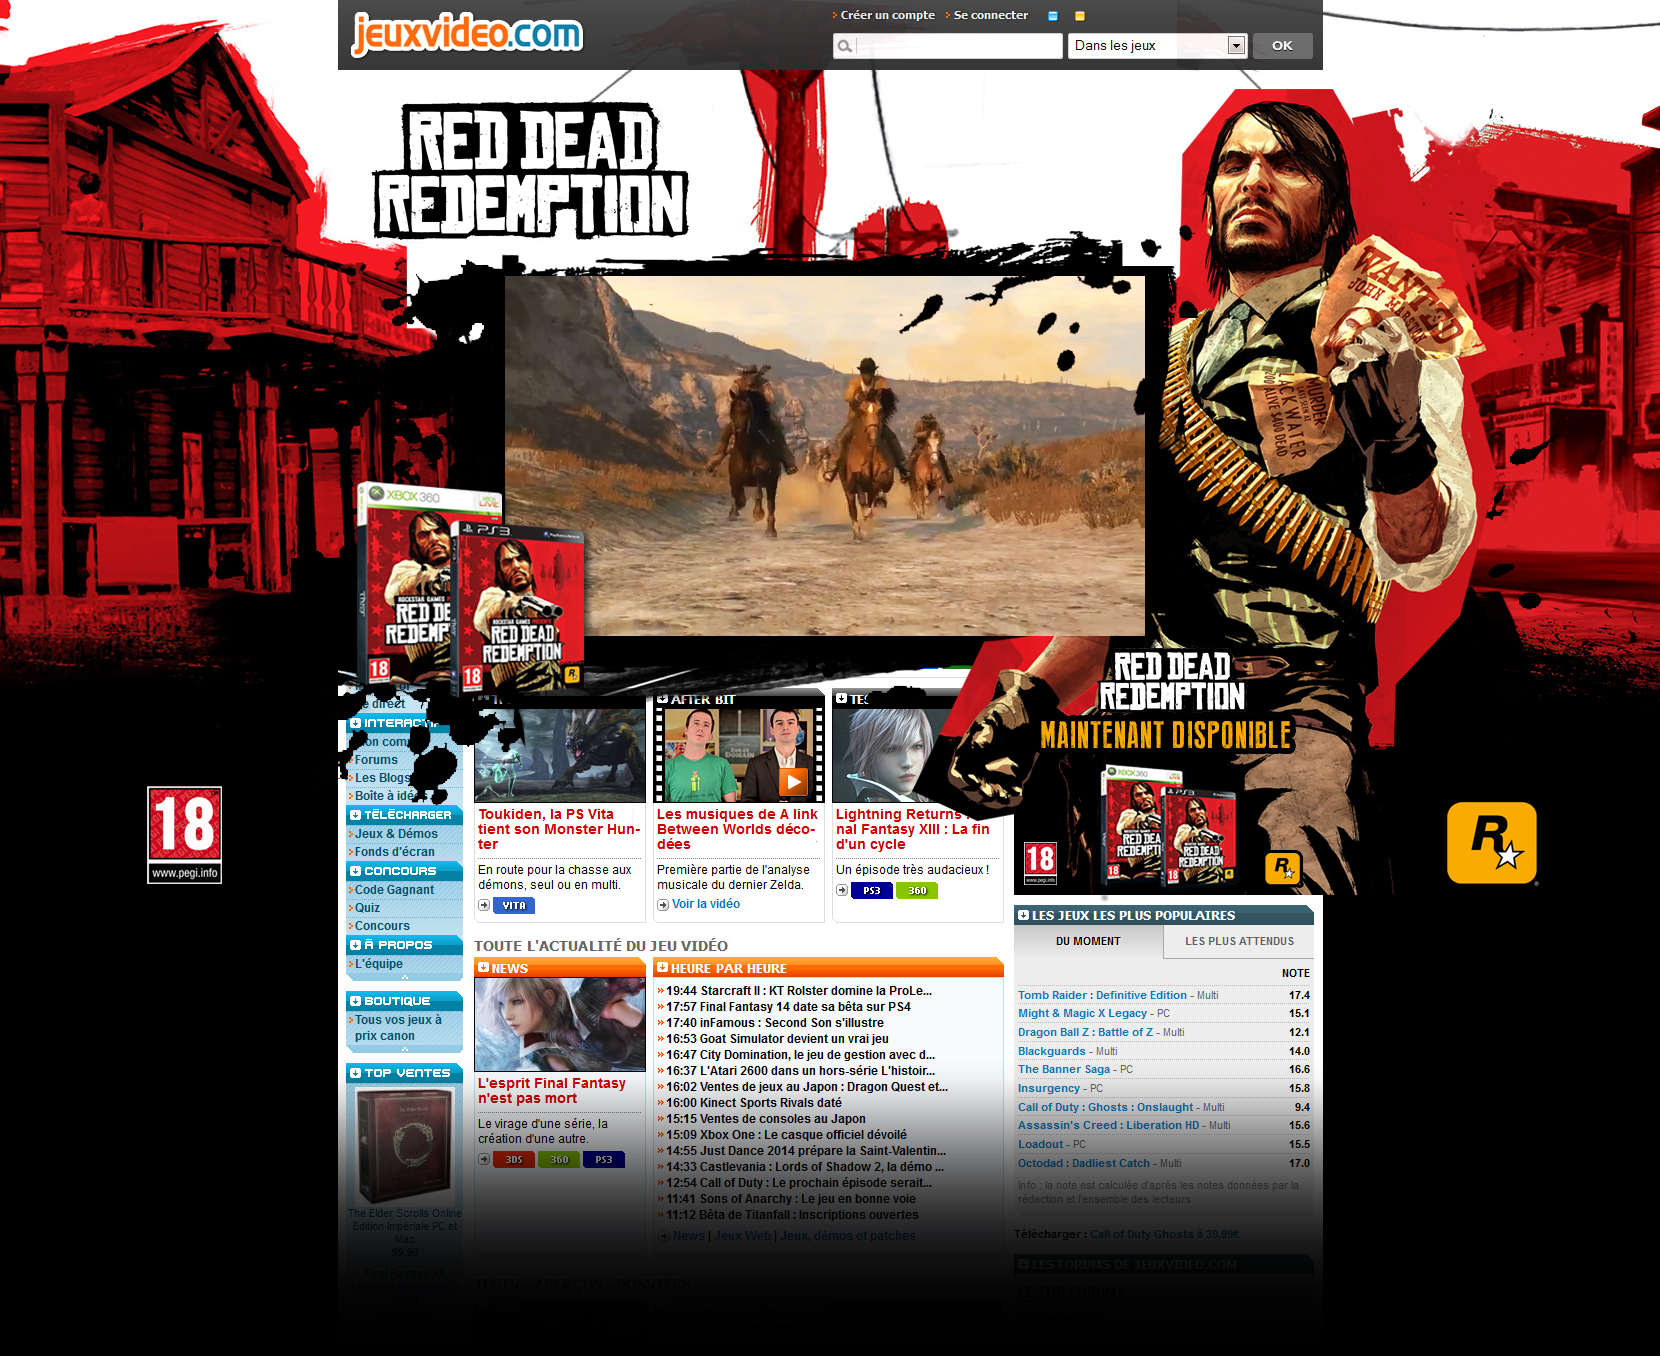 Red Dead Redemption Digital campaign: Homepage Take Over